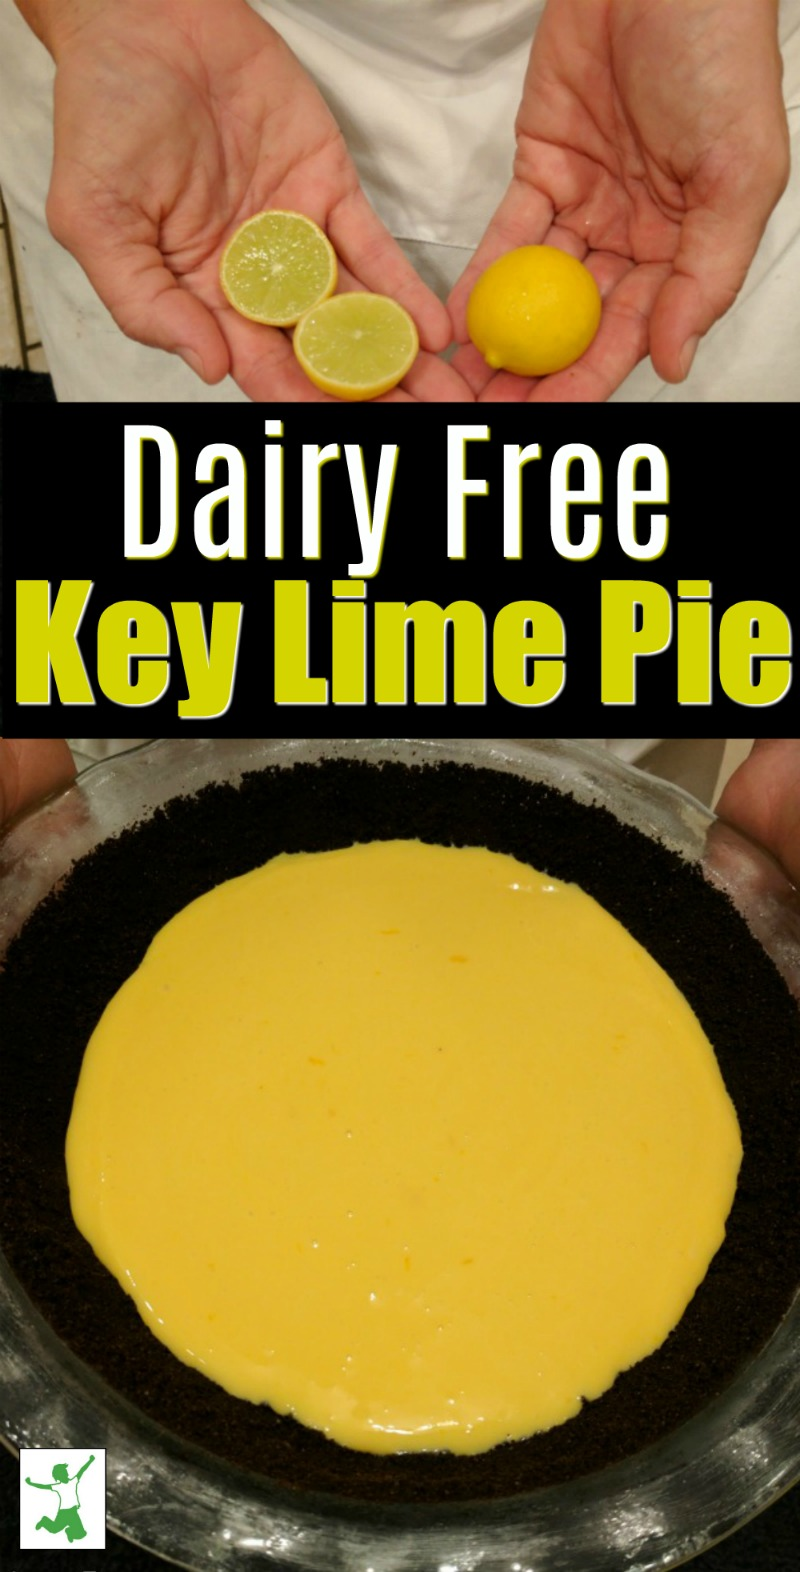 key lime pie nondairy